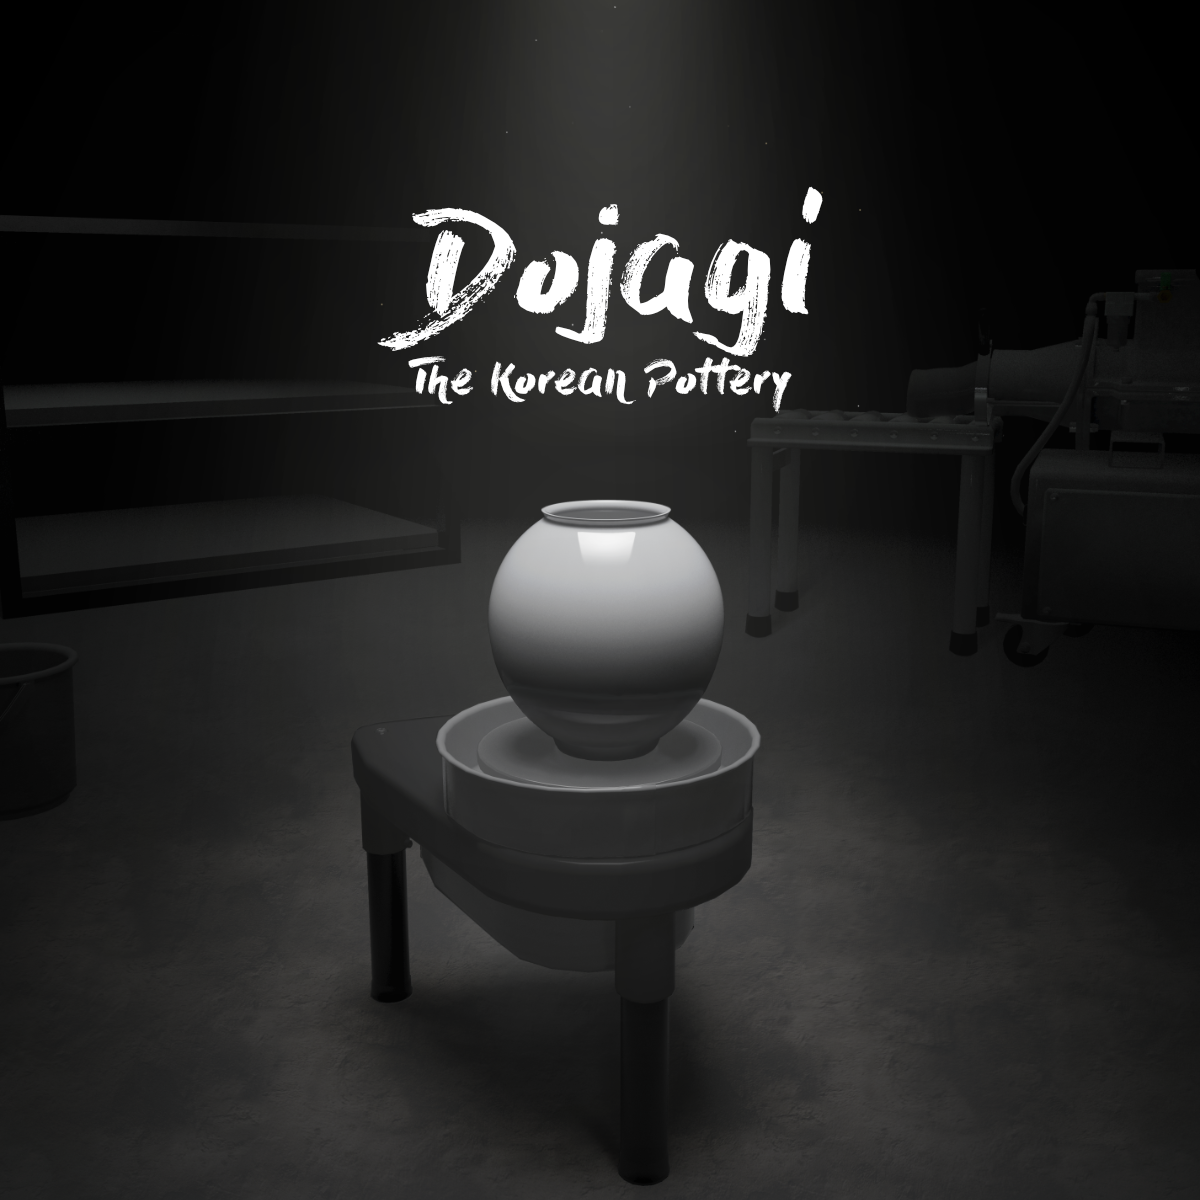 DOJAGI: The Korean Pottery